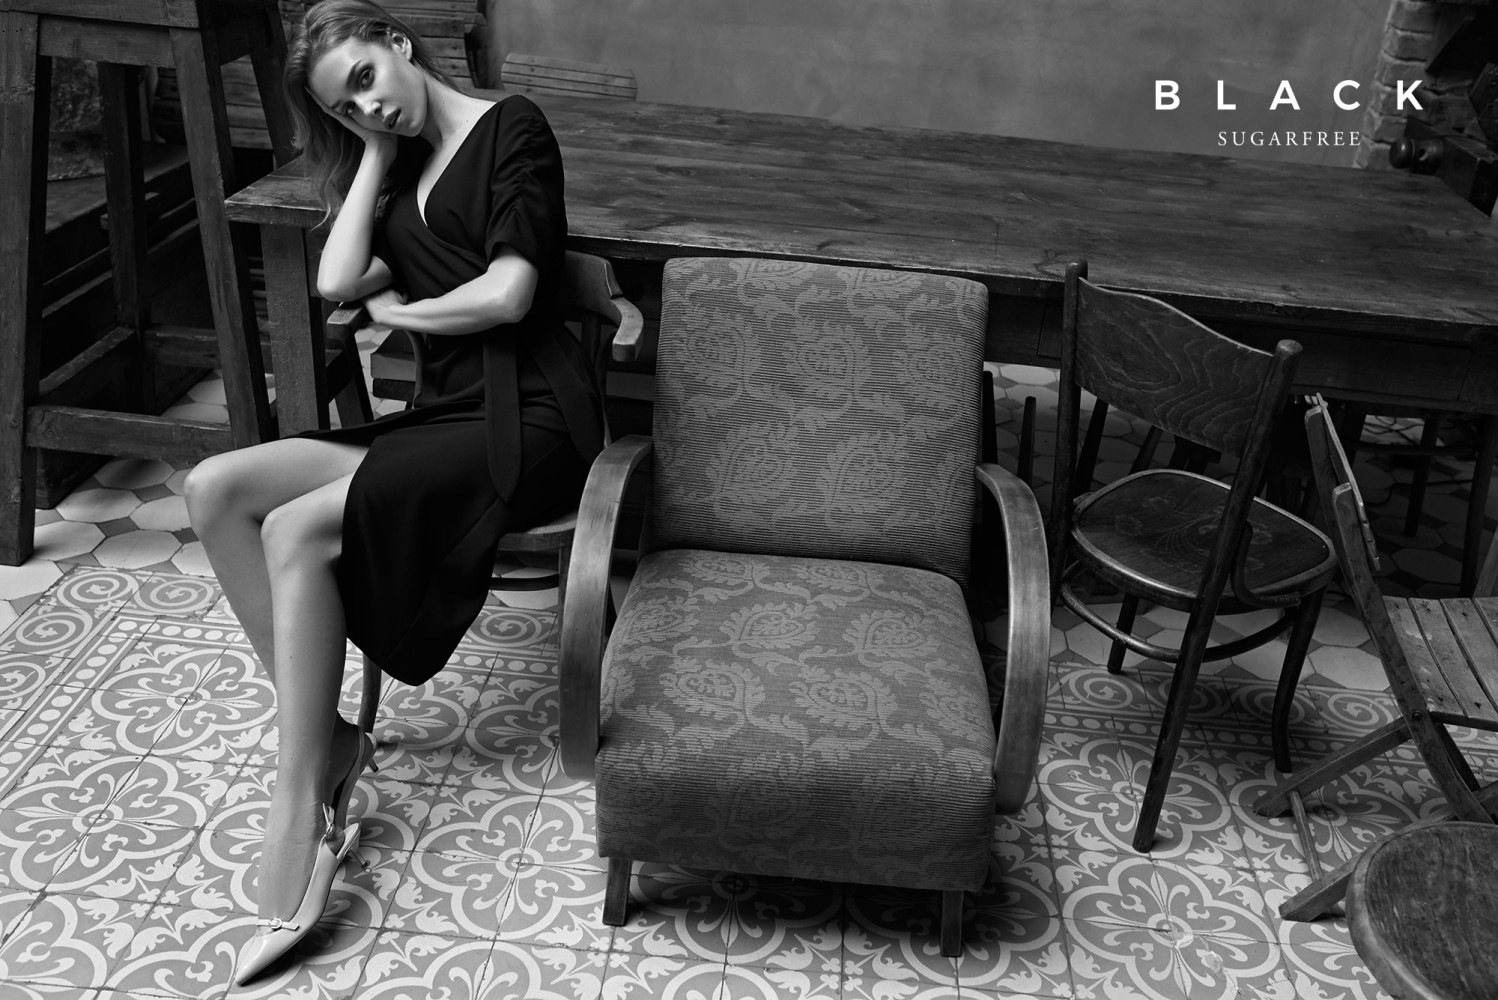 Malgosia G. for Sugarfree Black, Fall 2018